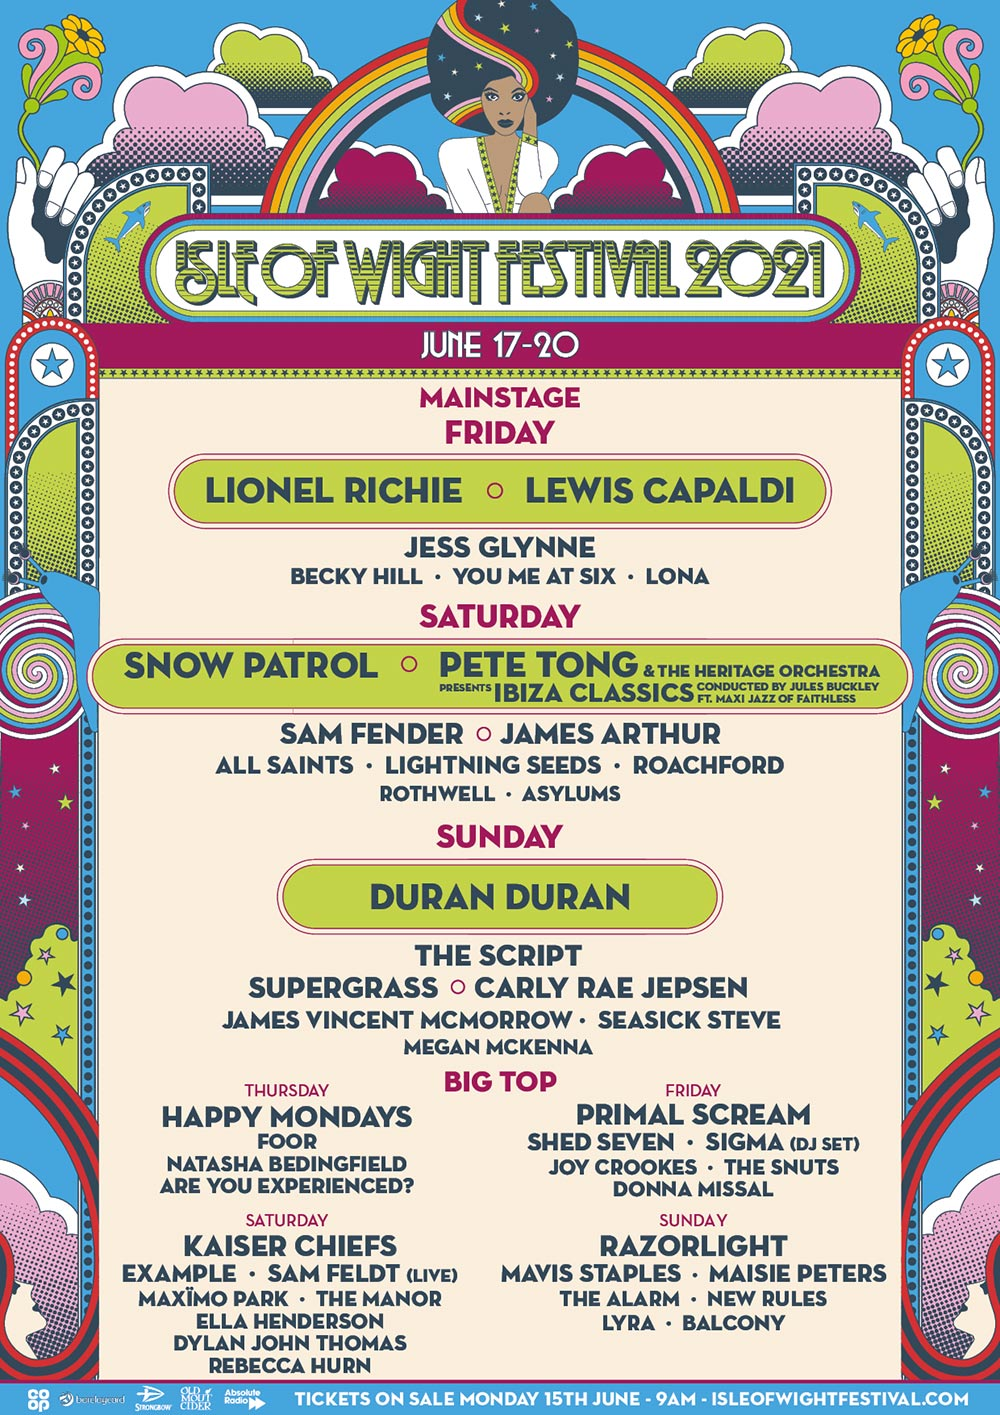 Isle of Wight Festival Line-up and music acts 2021